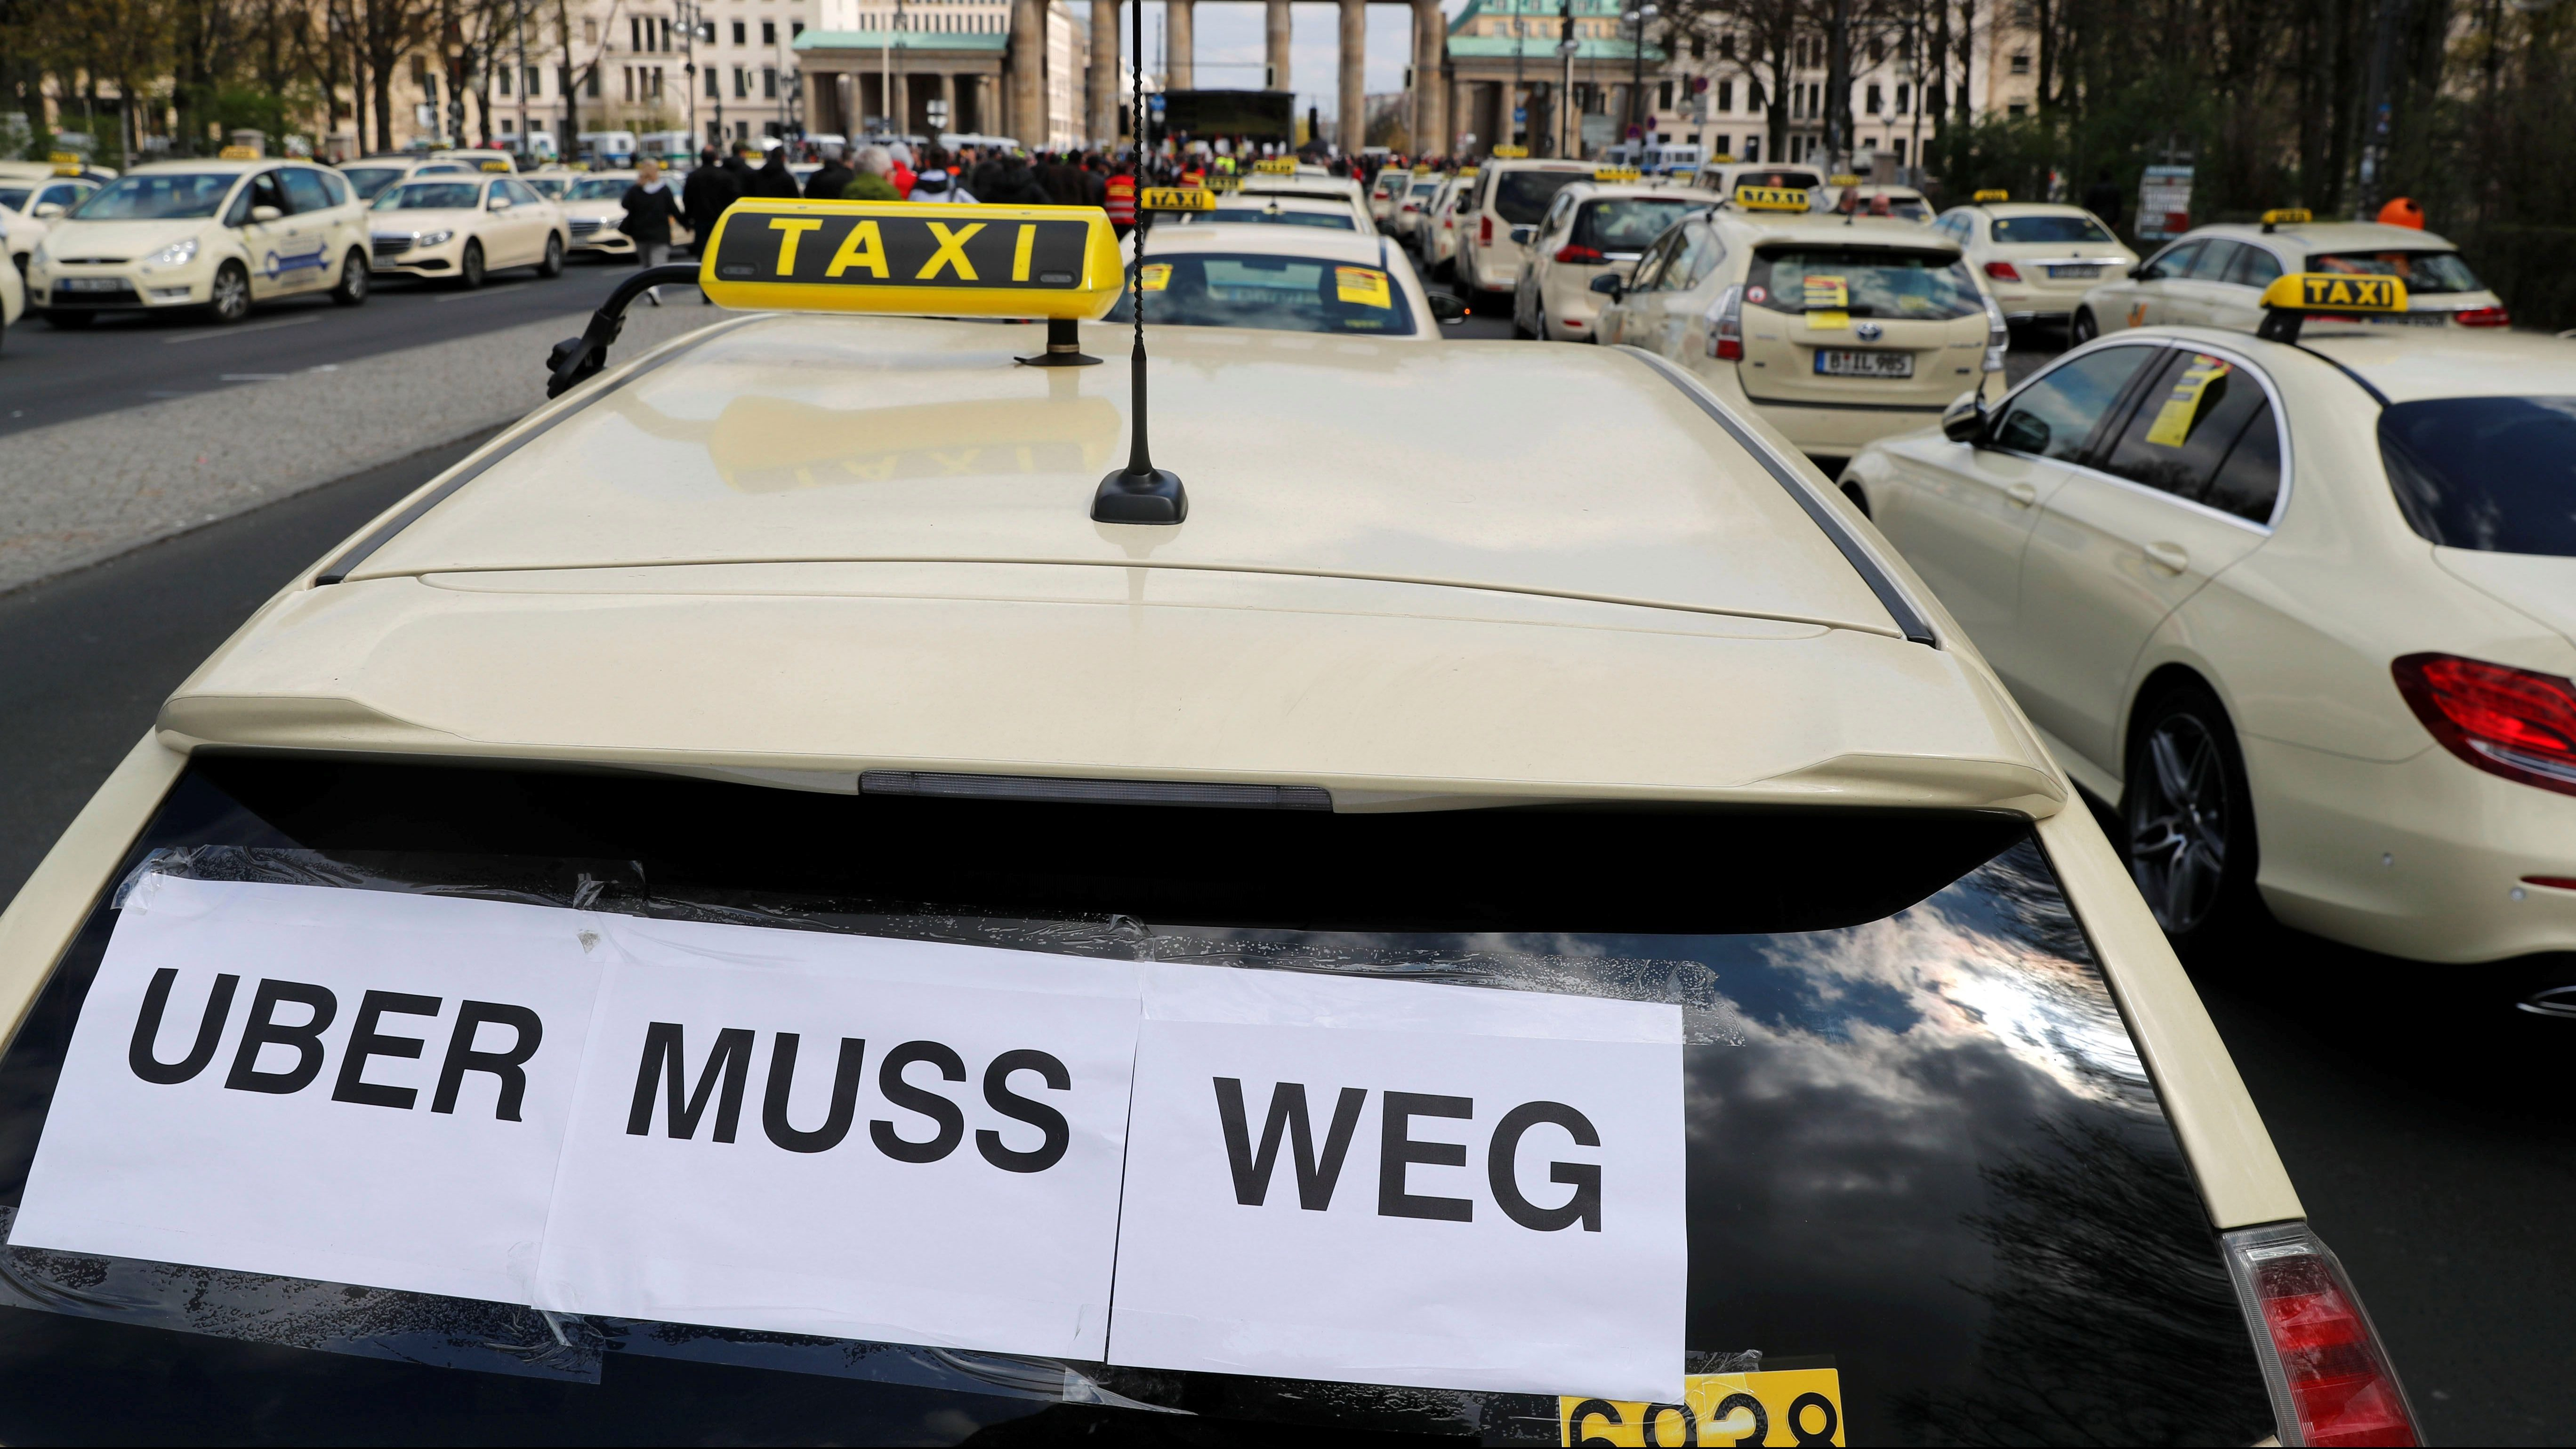 """Cars a seen during a protest of licensed taxi drivers against a planned change of the passenger transport law in Berlin, Germany, April 10, 2019. The words read """"Uber must go."""""""